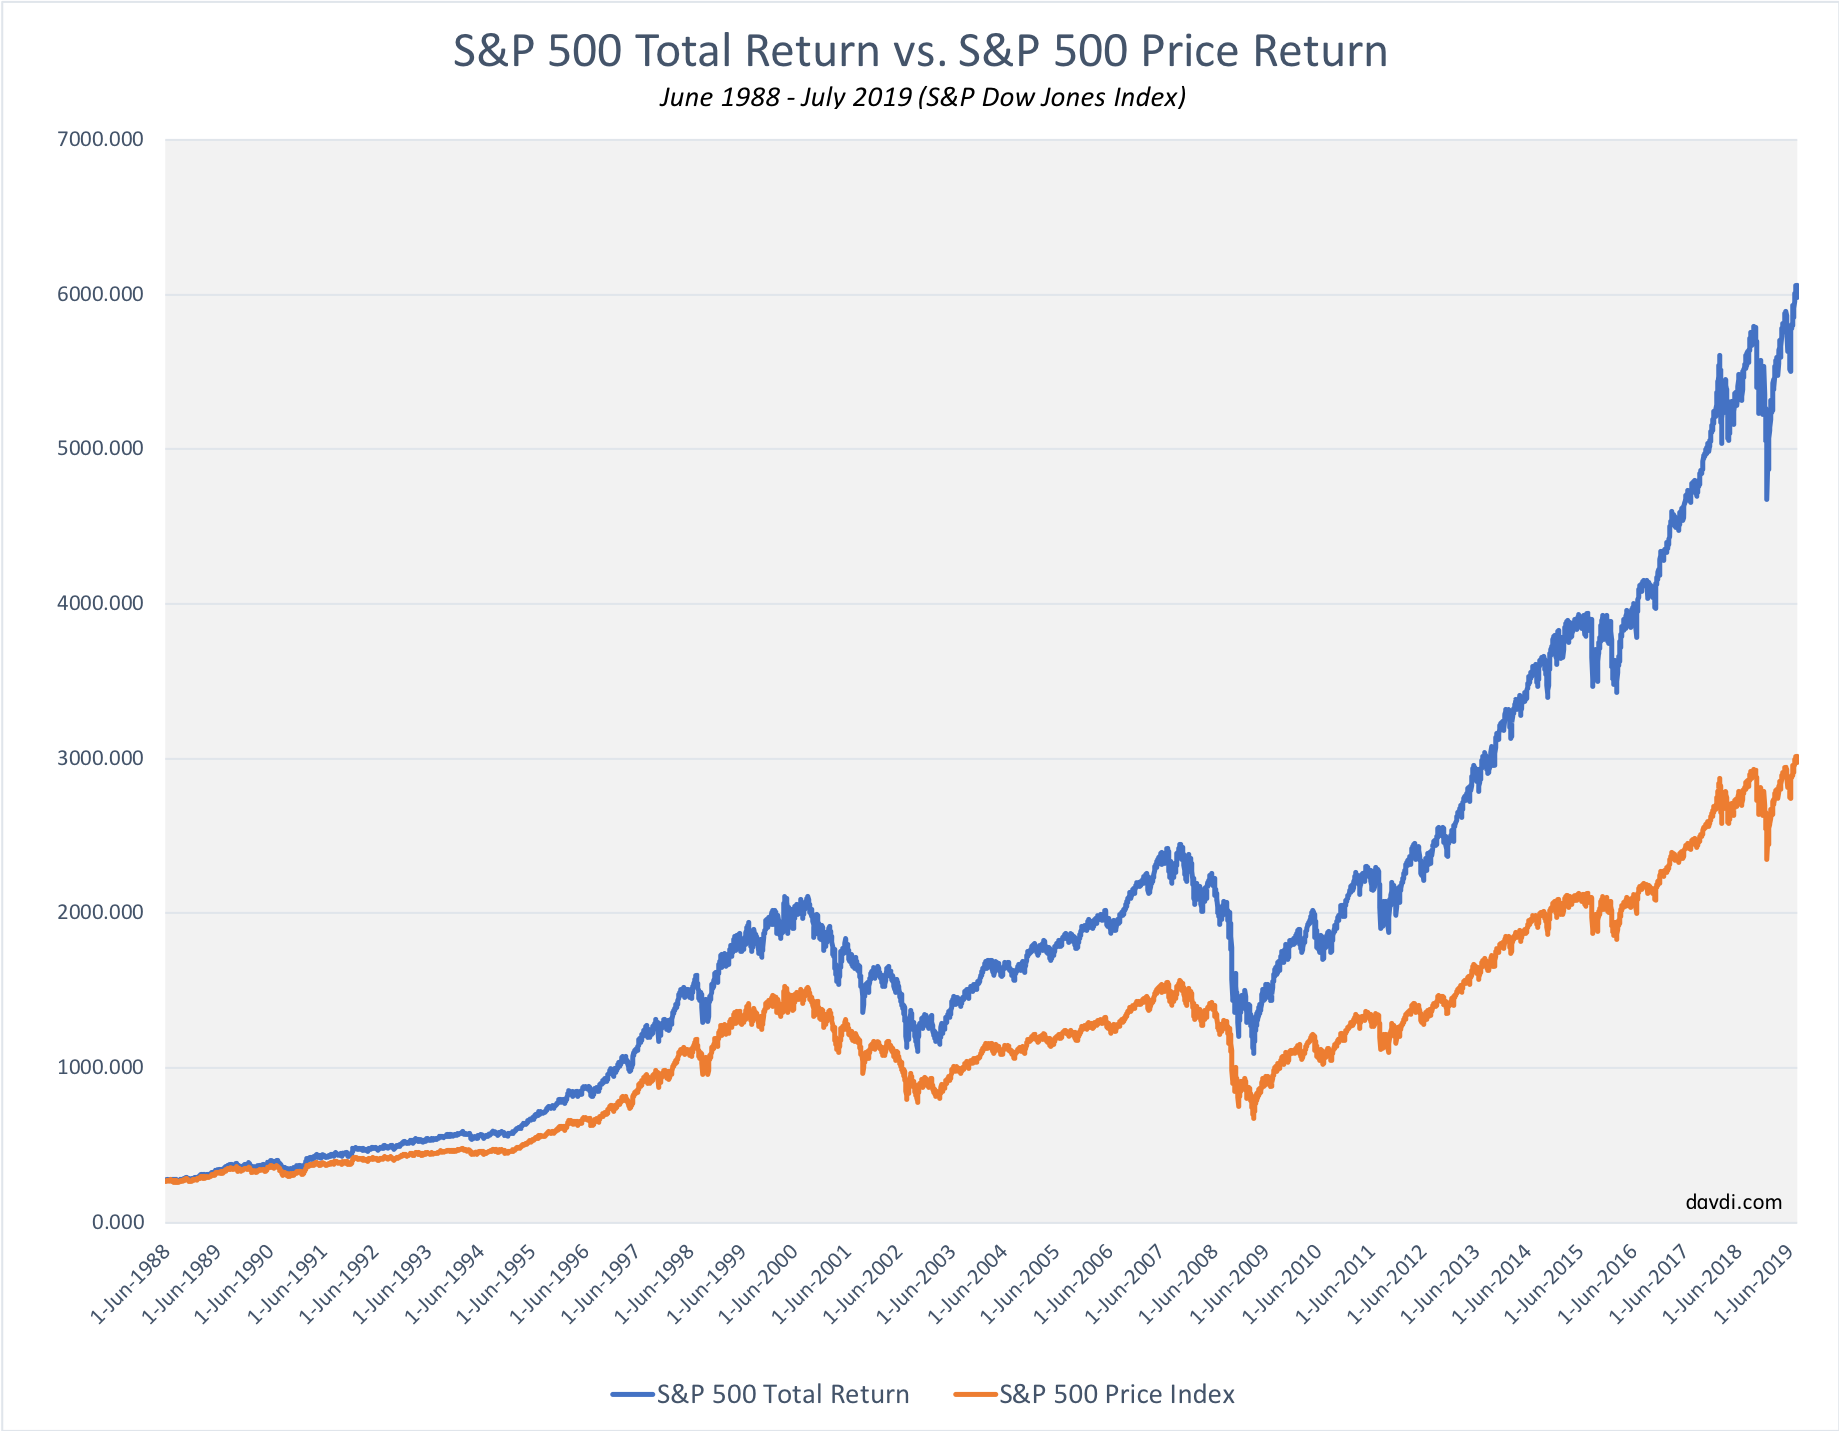 S&P 500 Total Return vs. Index Price Return to illustrate dollar cost averaging and reinvesting